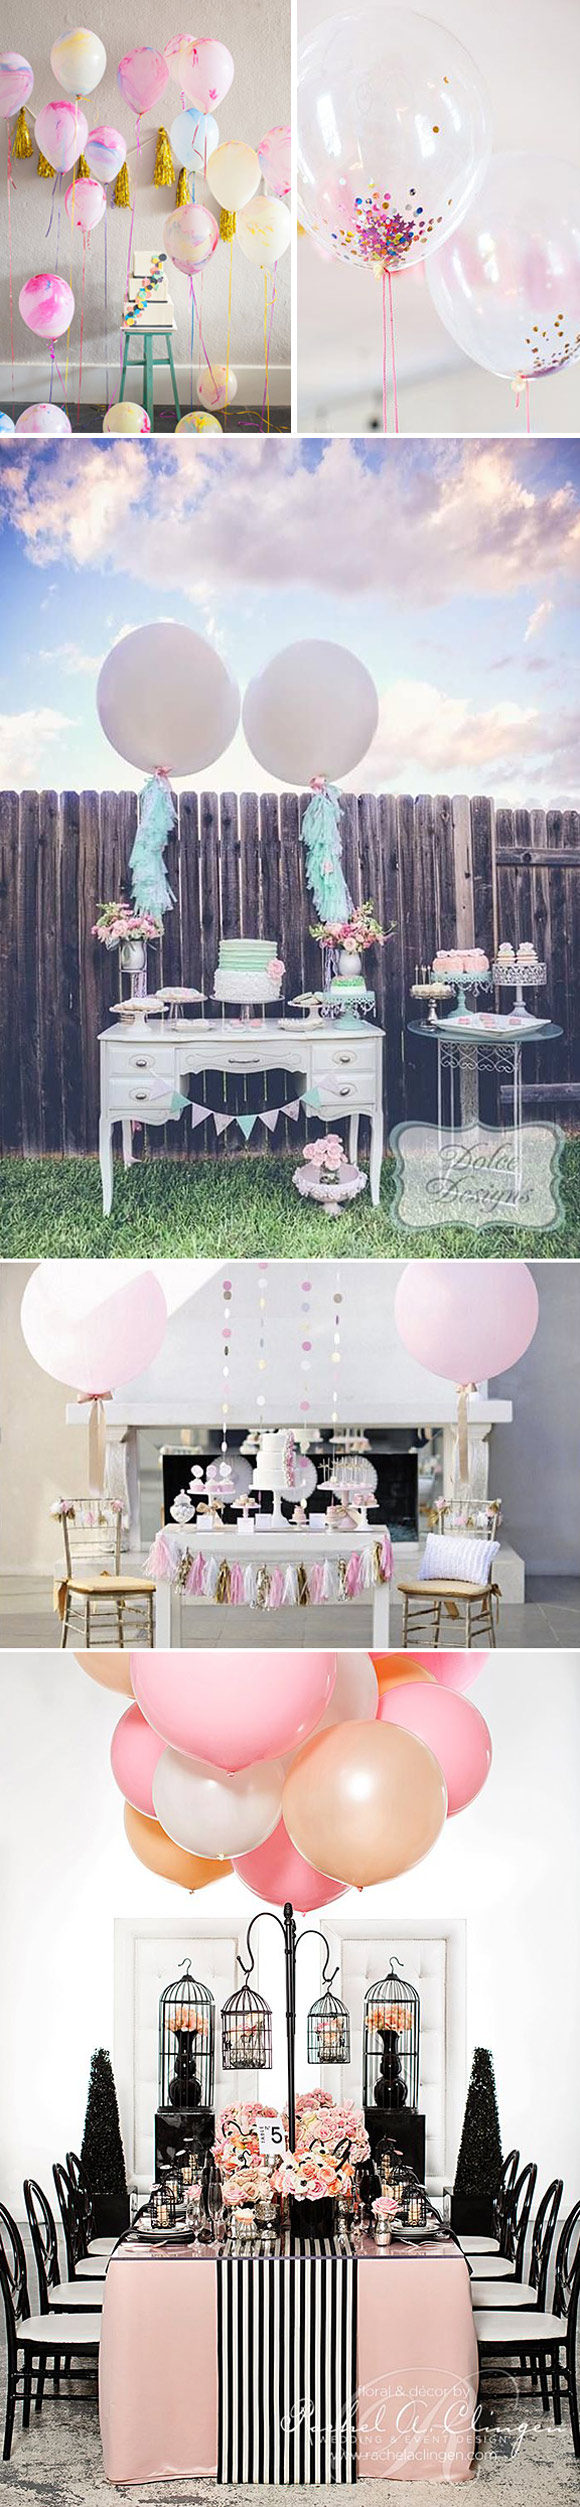 Ideas para decorar bodas y fiestas con globos de color